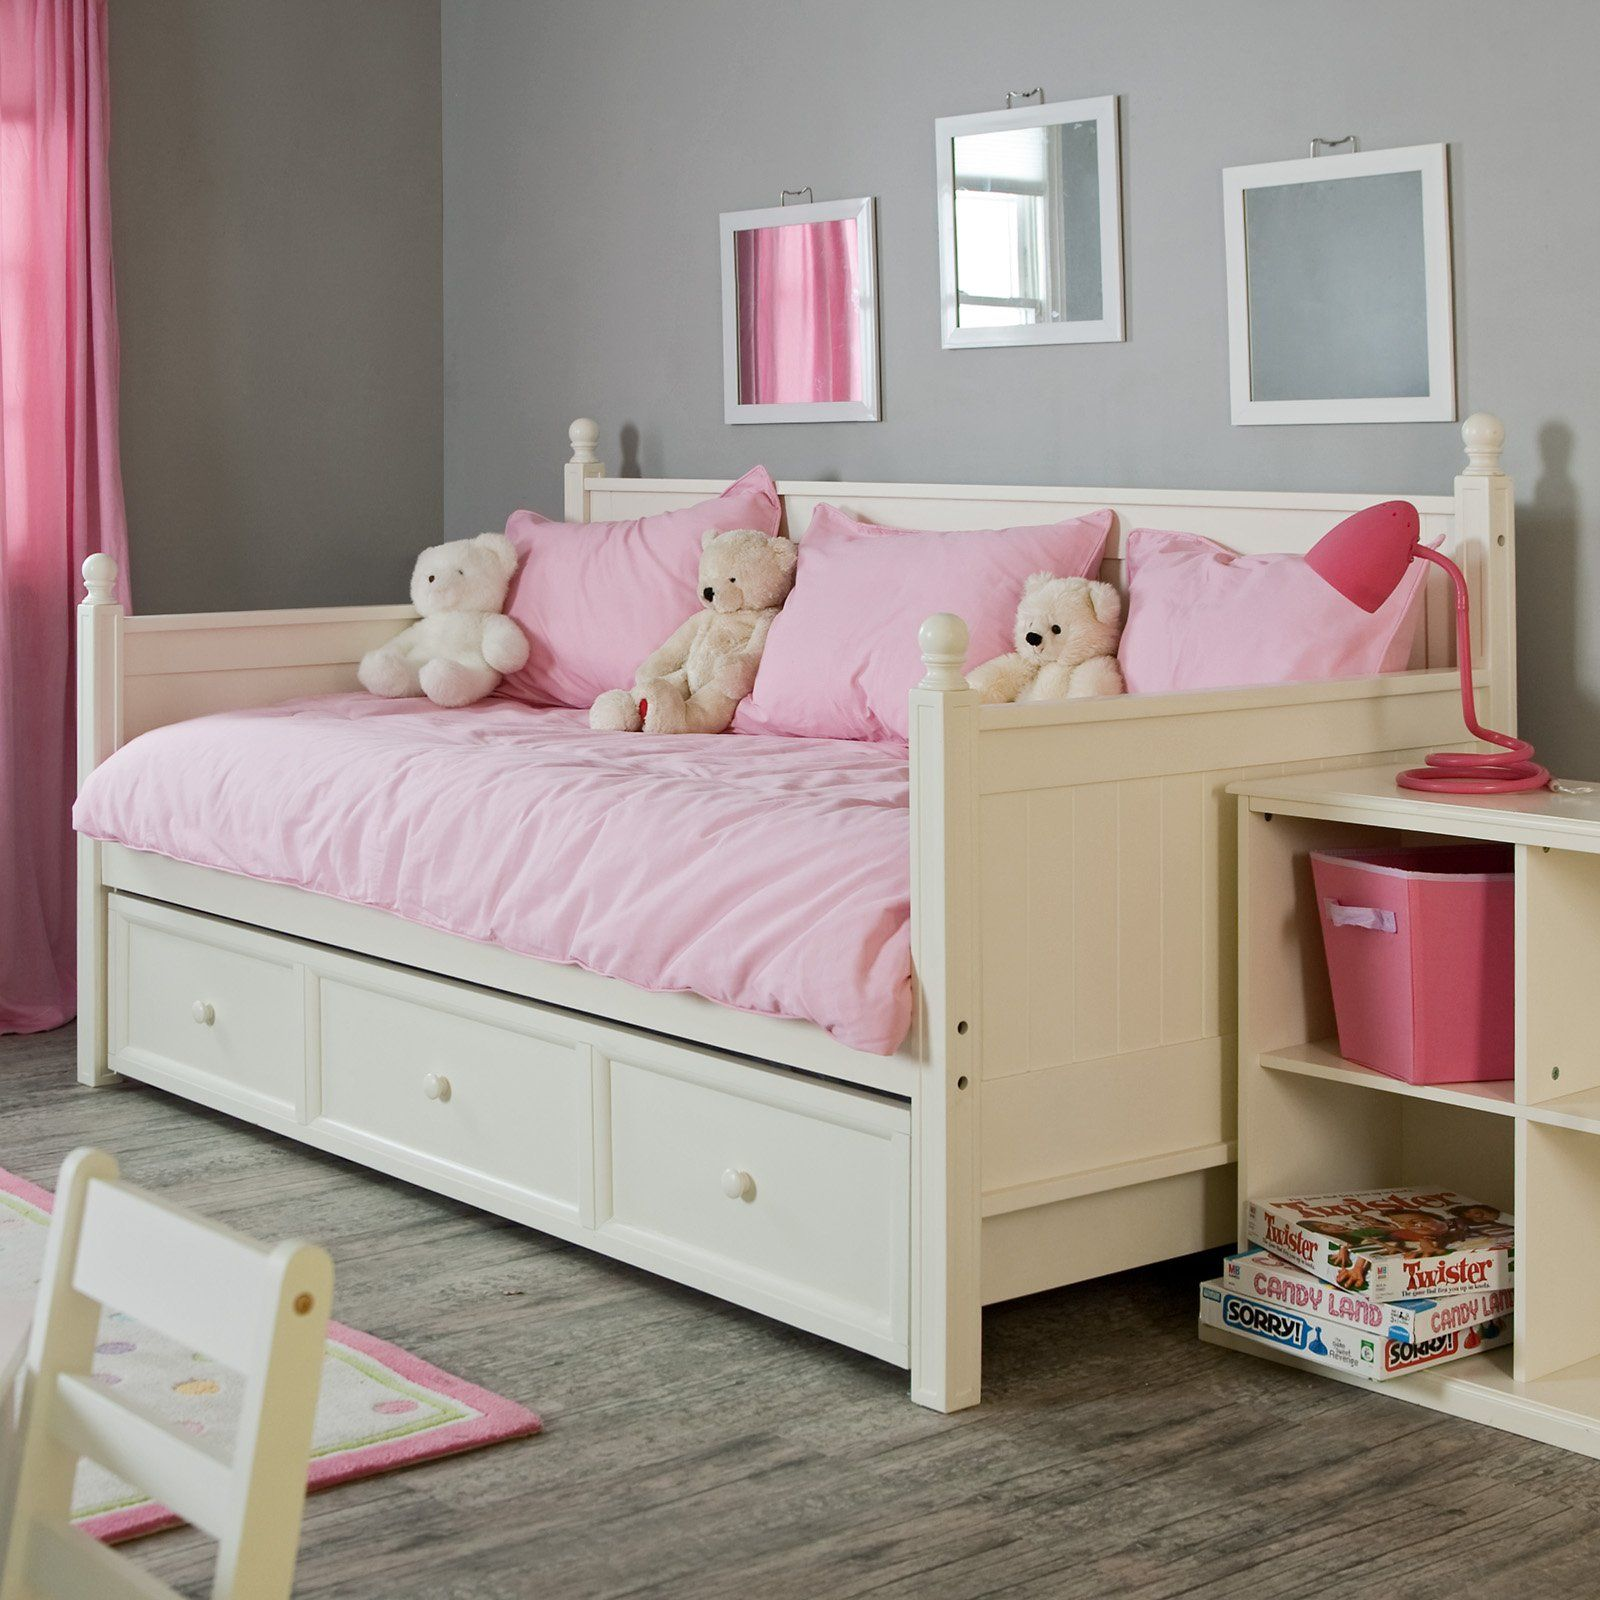 Balance Super Sugary Pink With A Soft Dove Grey For A Room That